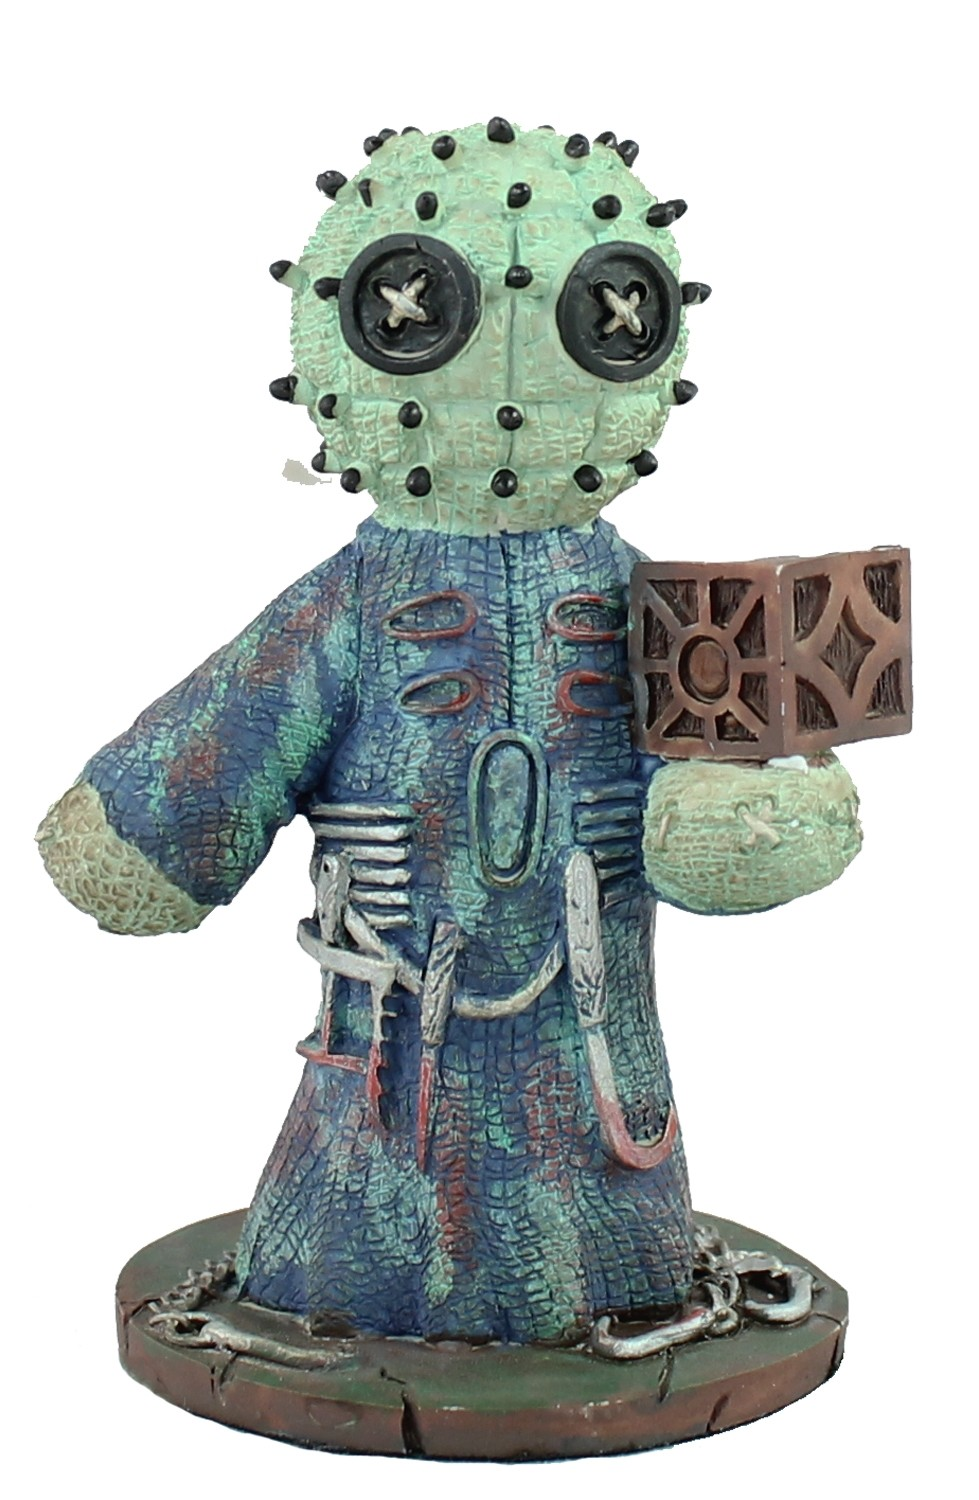 Pinheadz Figur Pin Hellraiser Horror Figur Monster Figuren